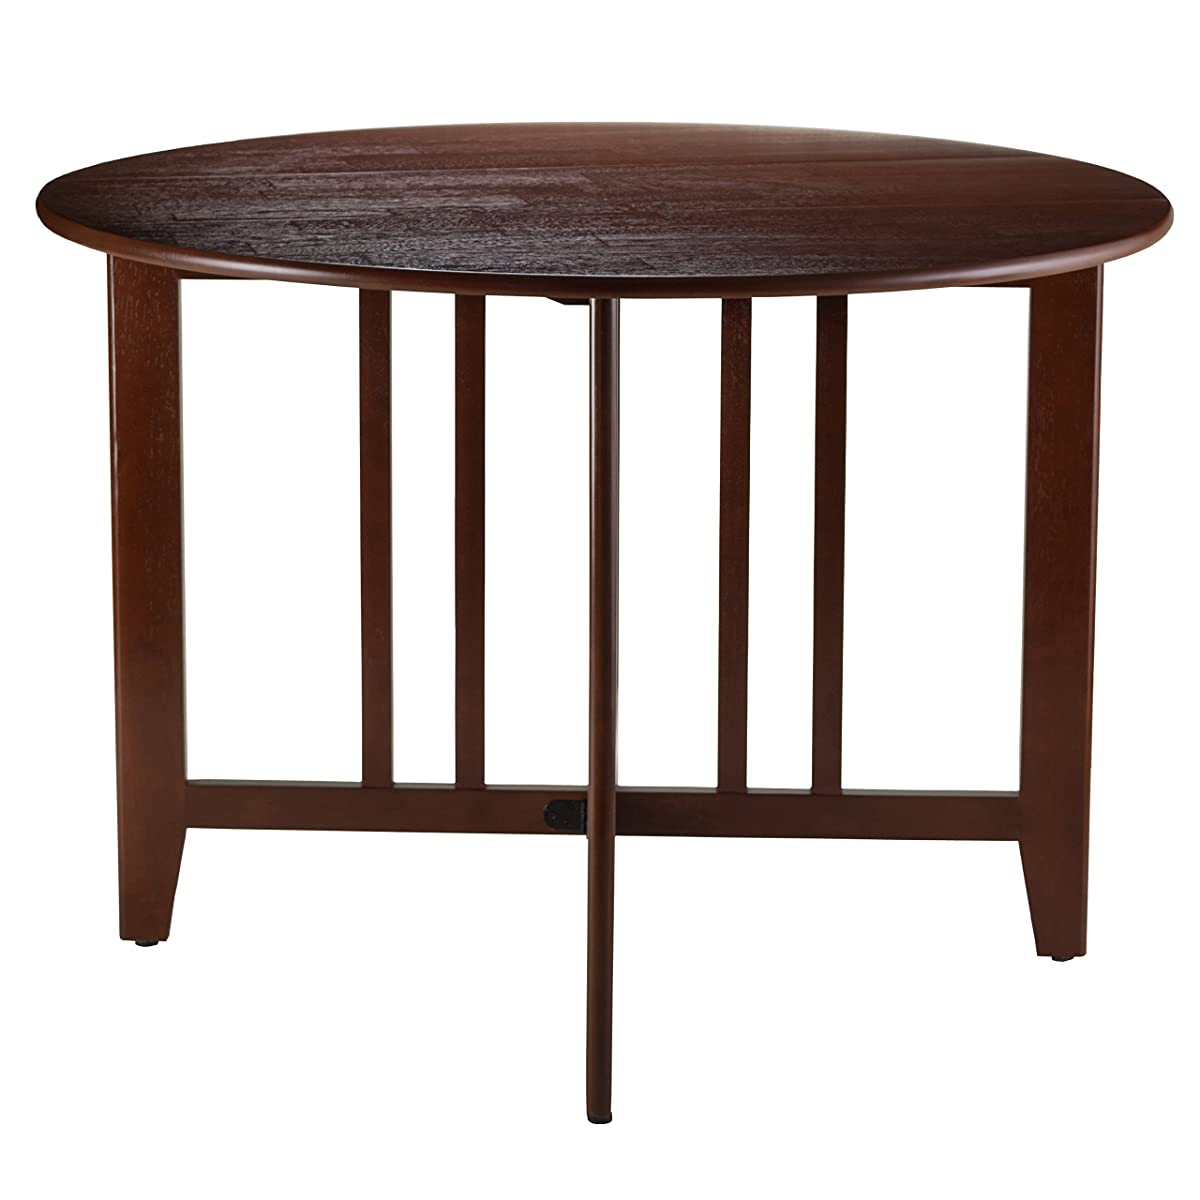 Winsome Wood Alamo Double Drop Leaf Round Table Mission, 42-Inch